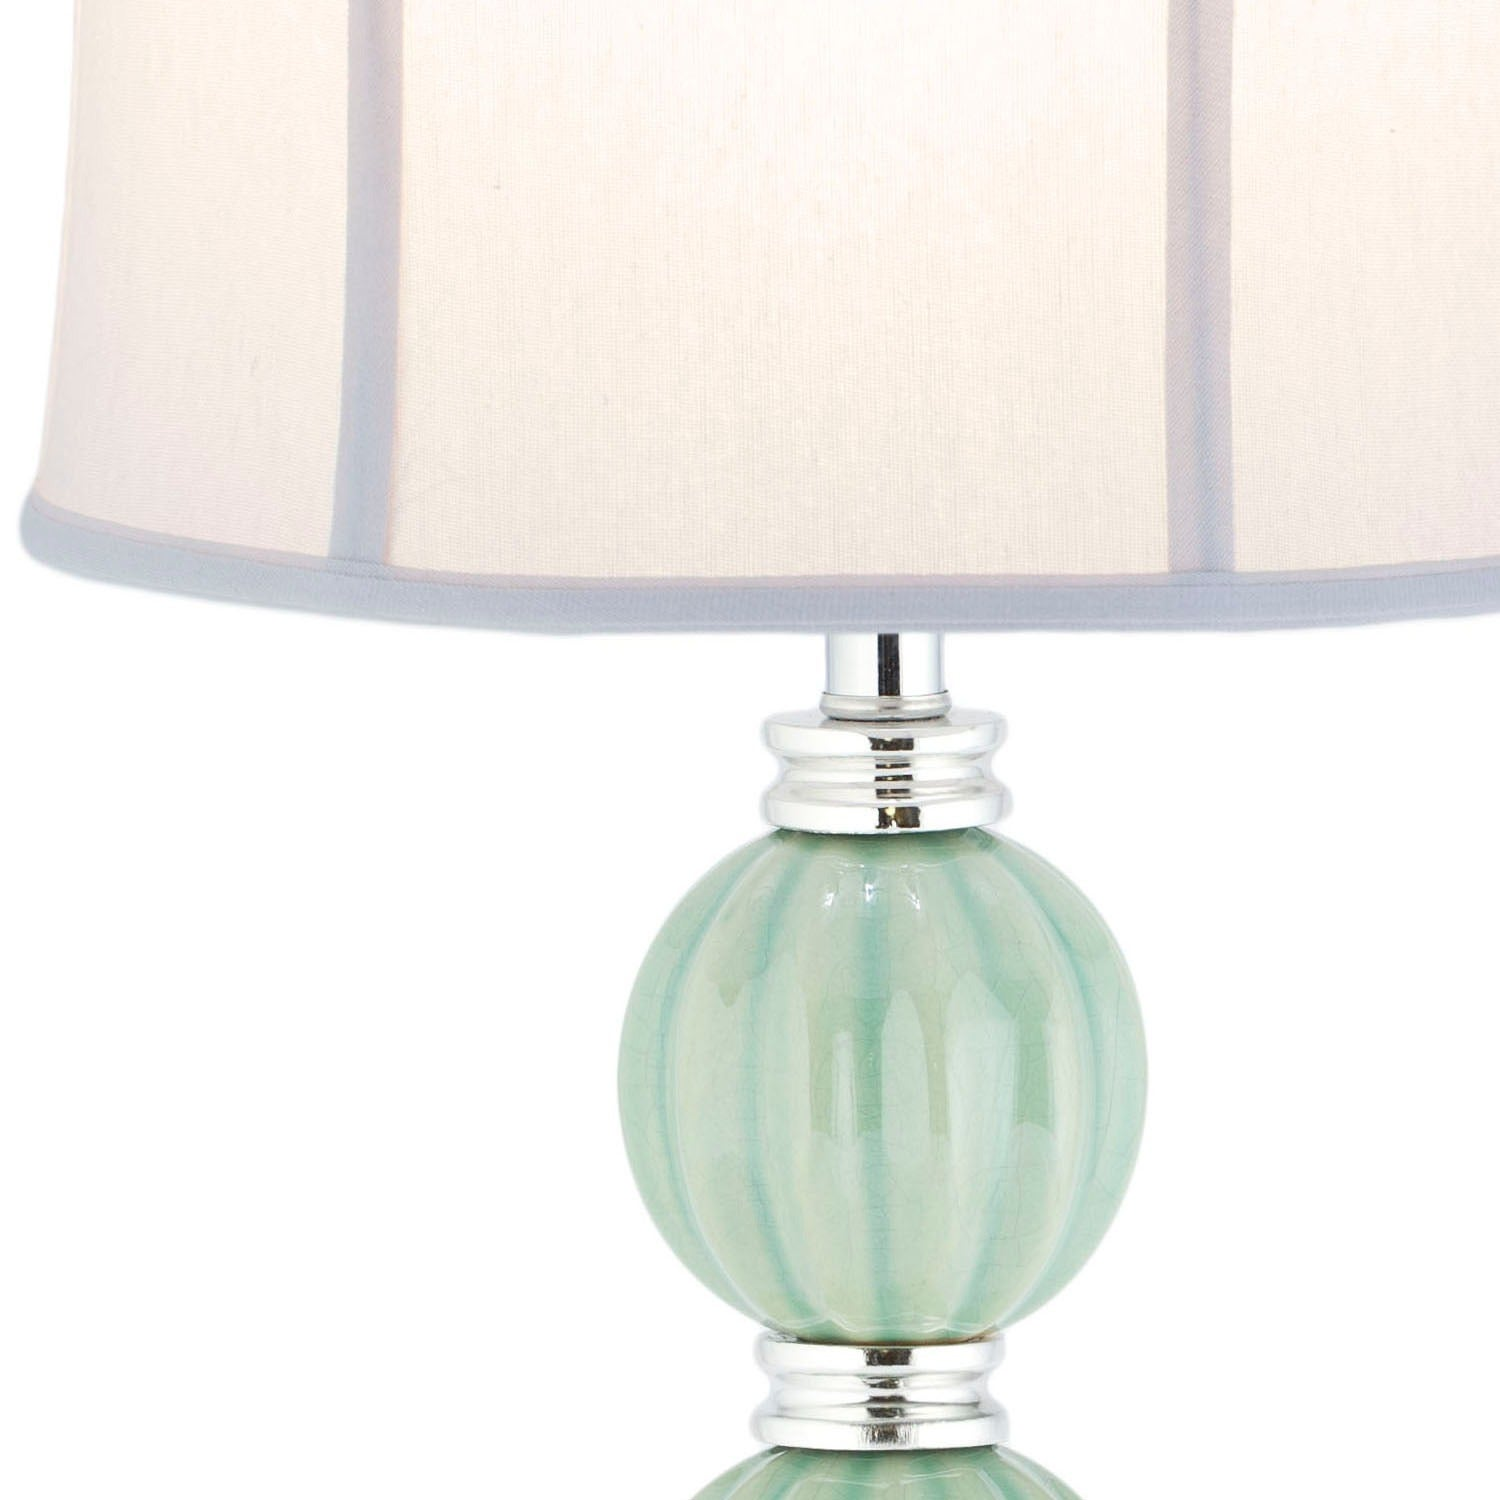 Safavieh Lighting 25 Inch Stephanie Green Globe Table Lamp   Free Shipping  Today   Overstock   17842042